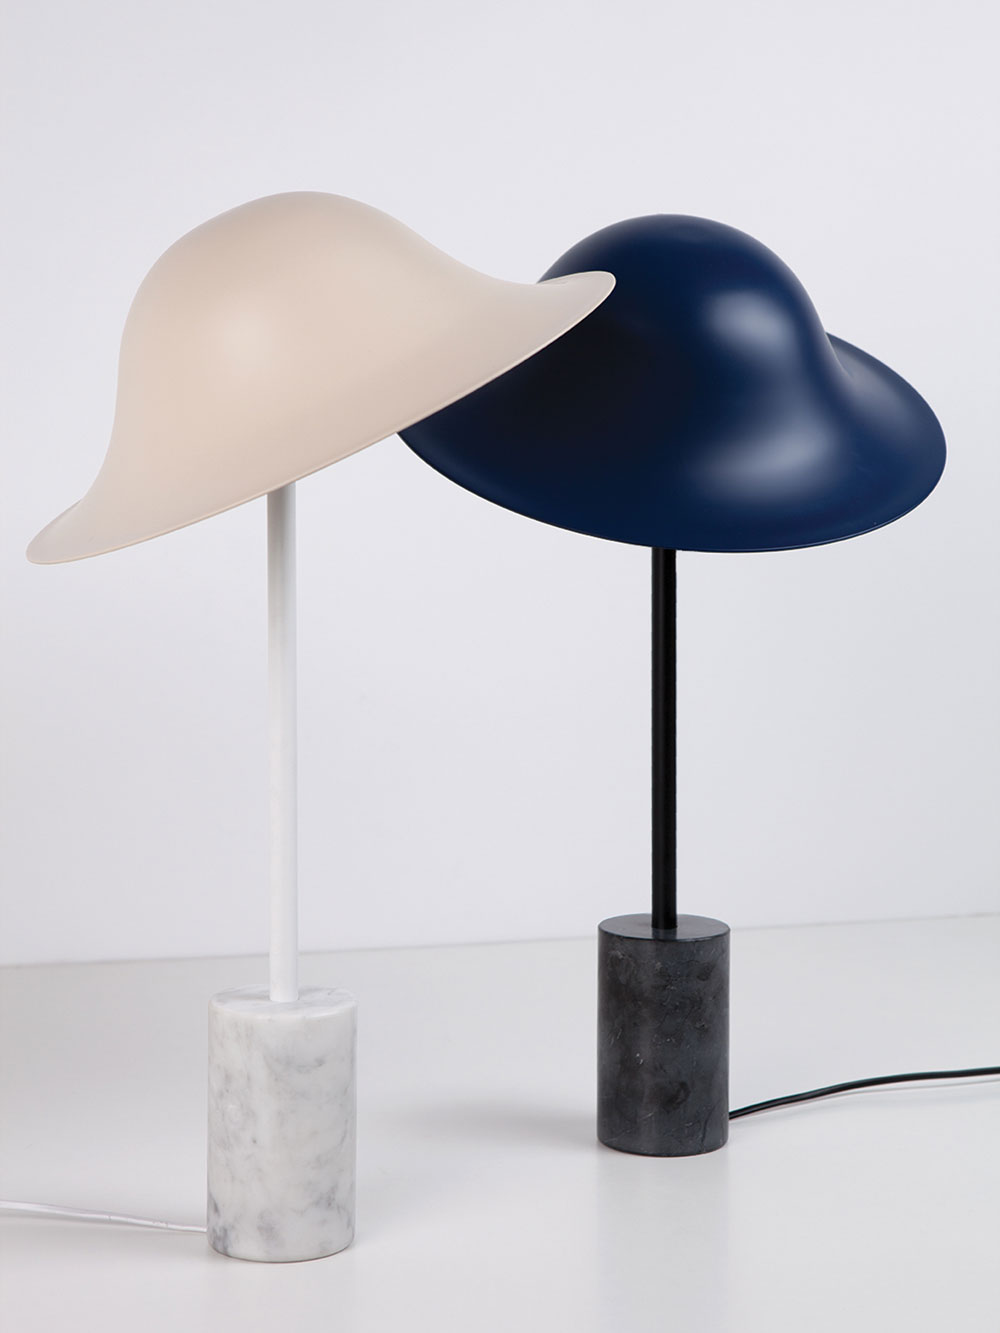 SaloneSatellite 2015 Joa Herrenknecht ONDA Lamps | #MILANTRACE2015 by Yellowtrace